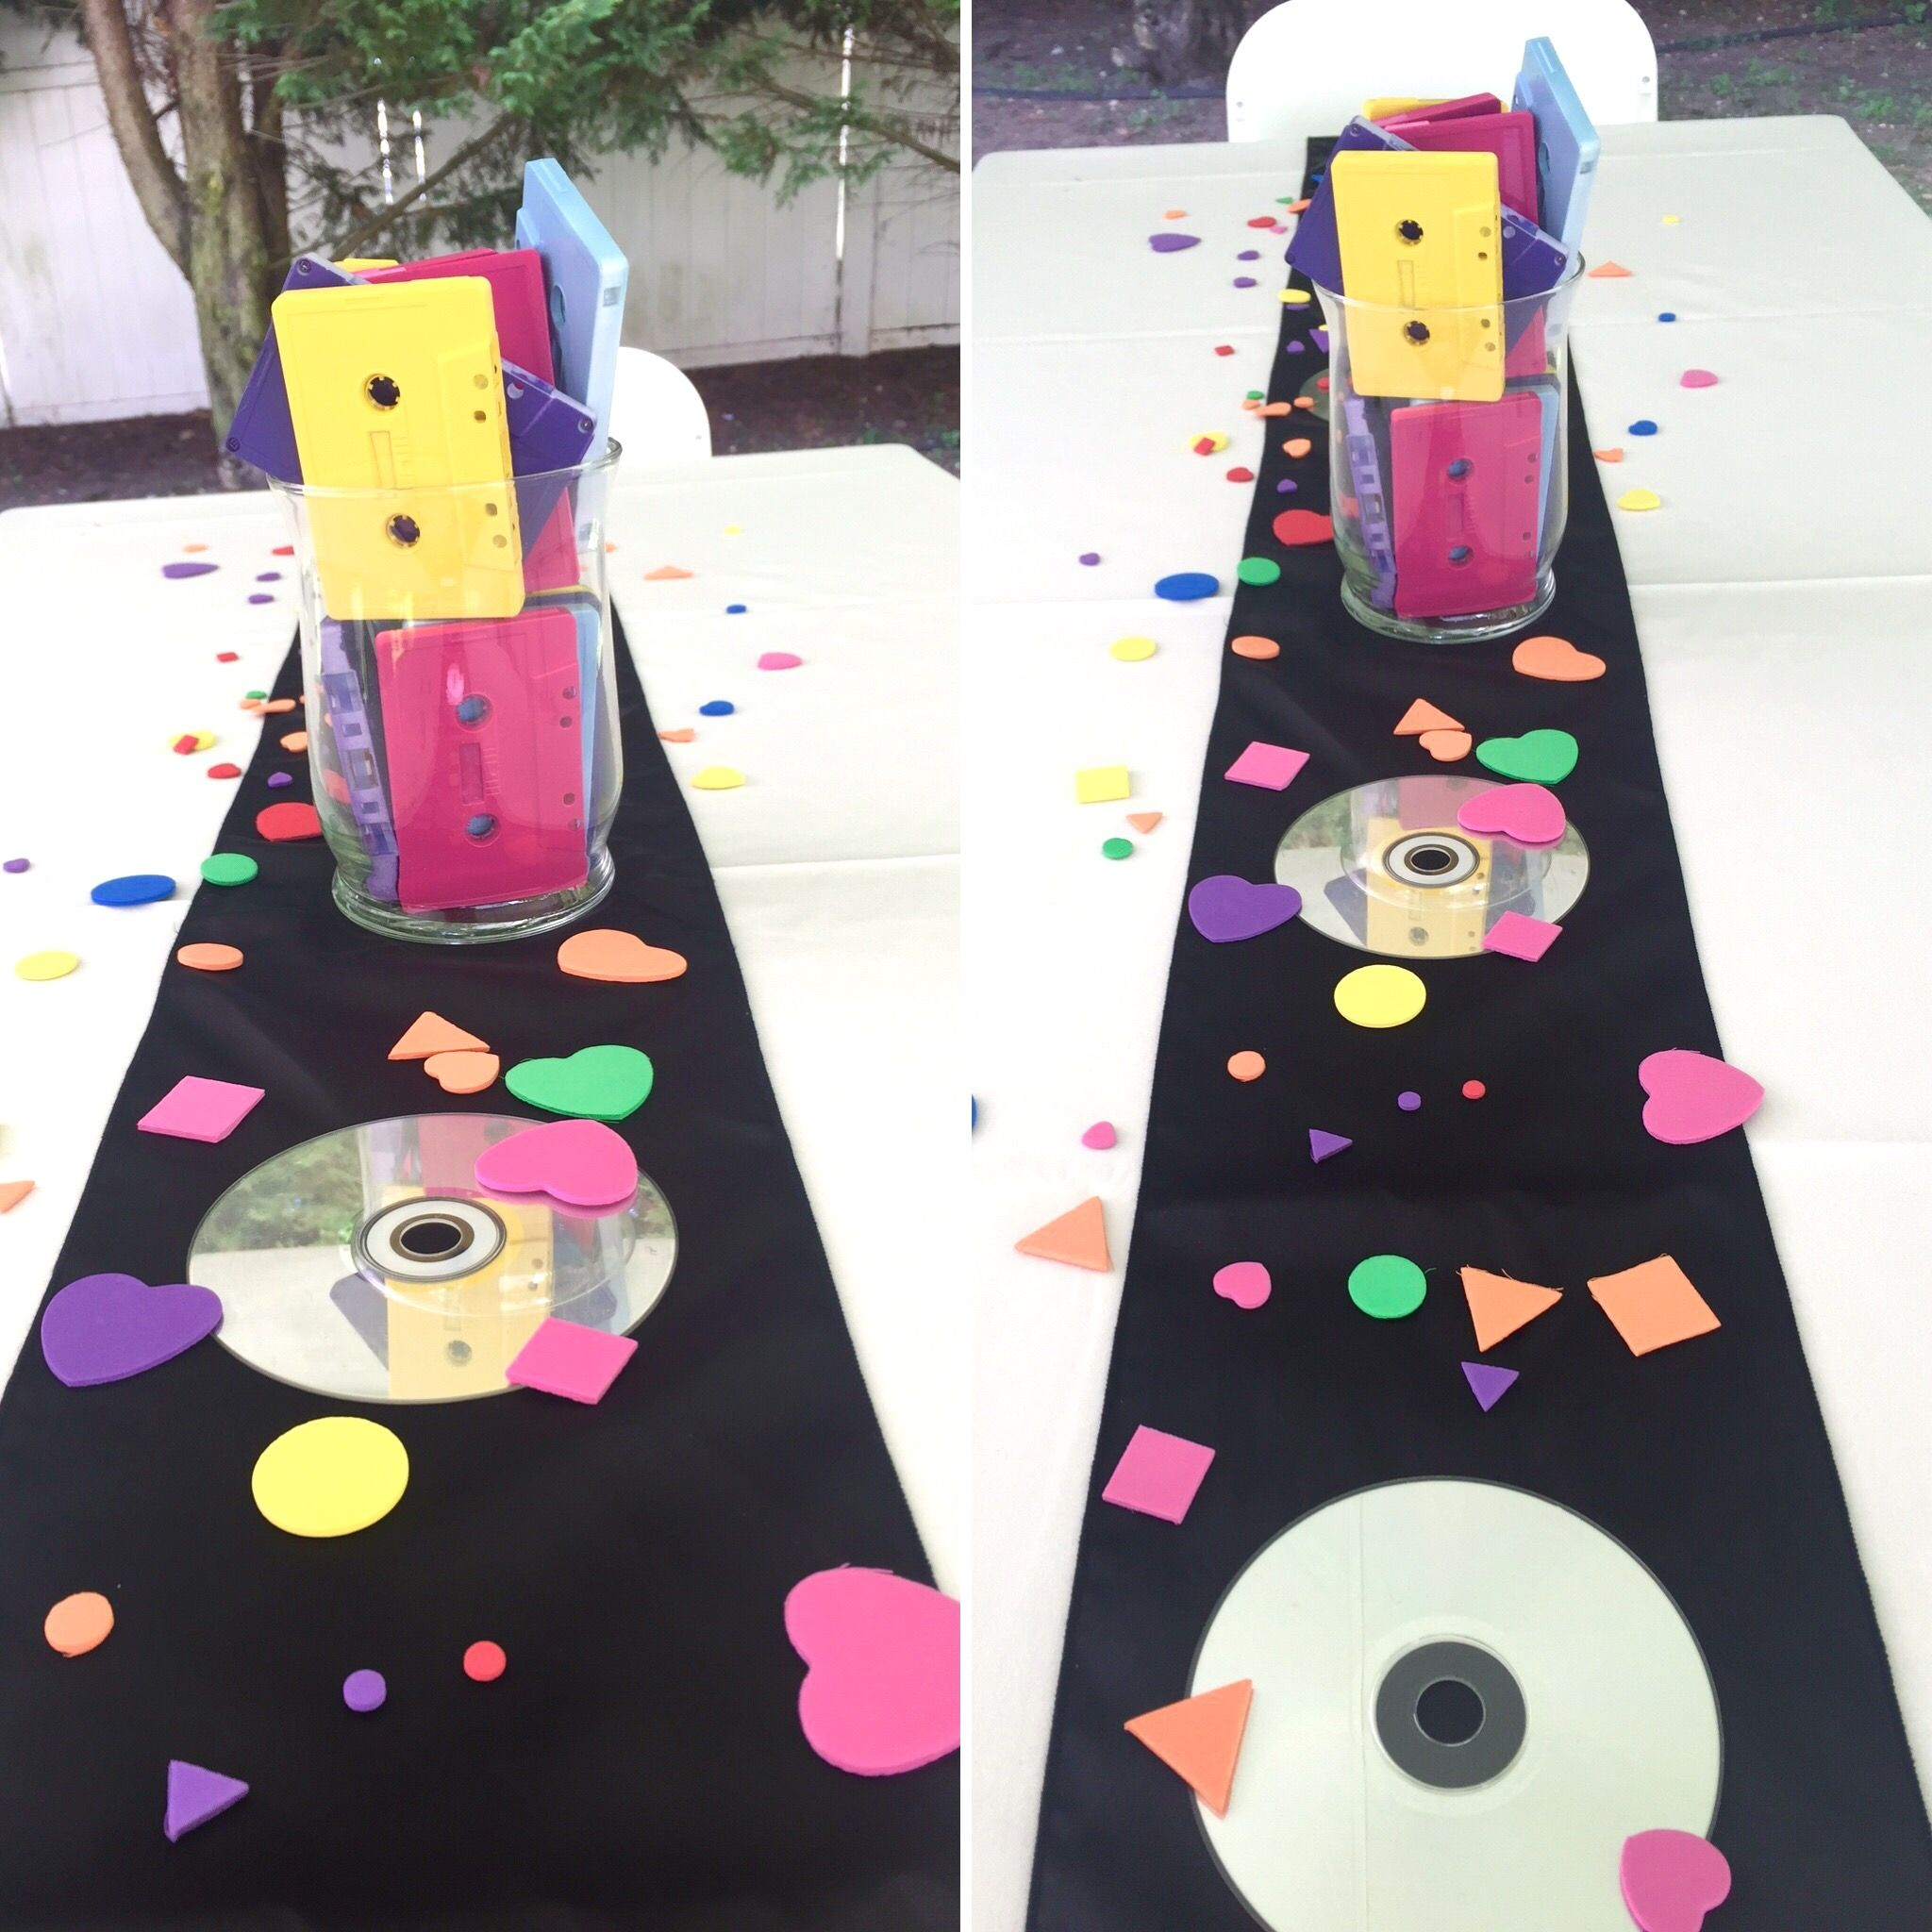 90 S Party Decoration Ideas Of Best 25 90s Party Decorations Ideas On Pinterest 80s